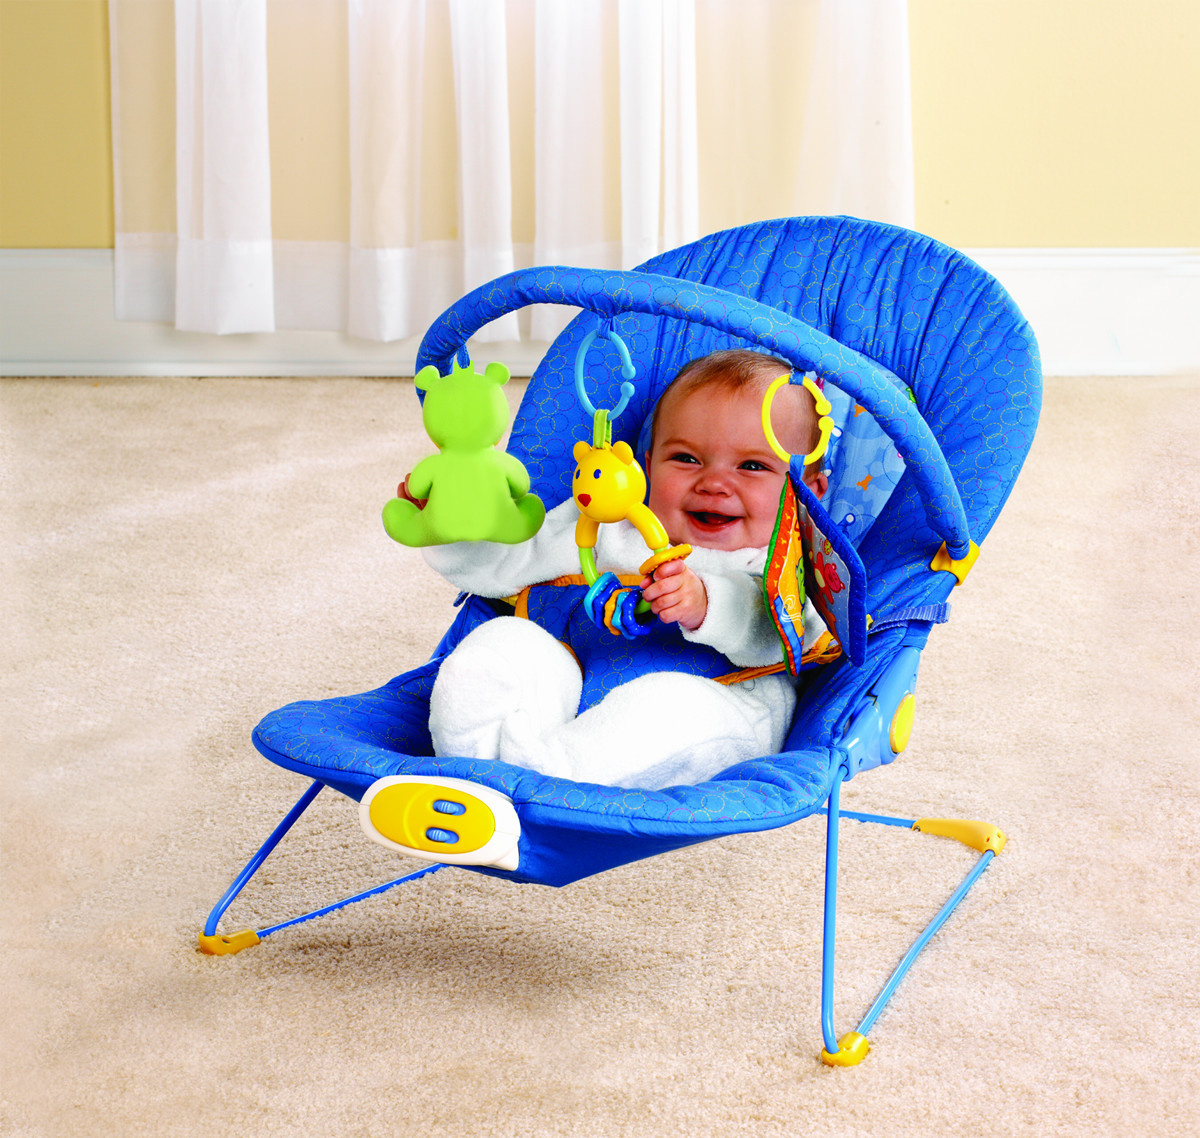 Multifunctional baby rocking chair inbouncers jumpers